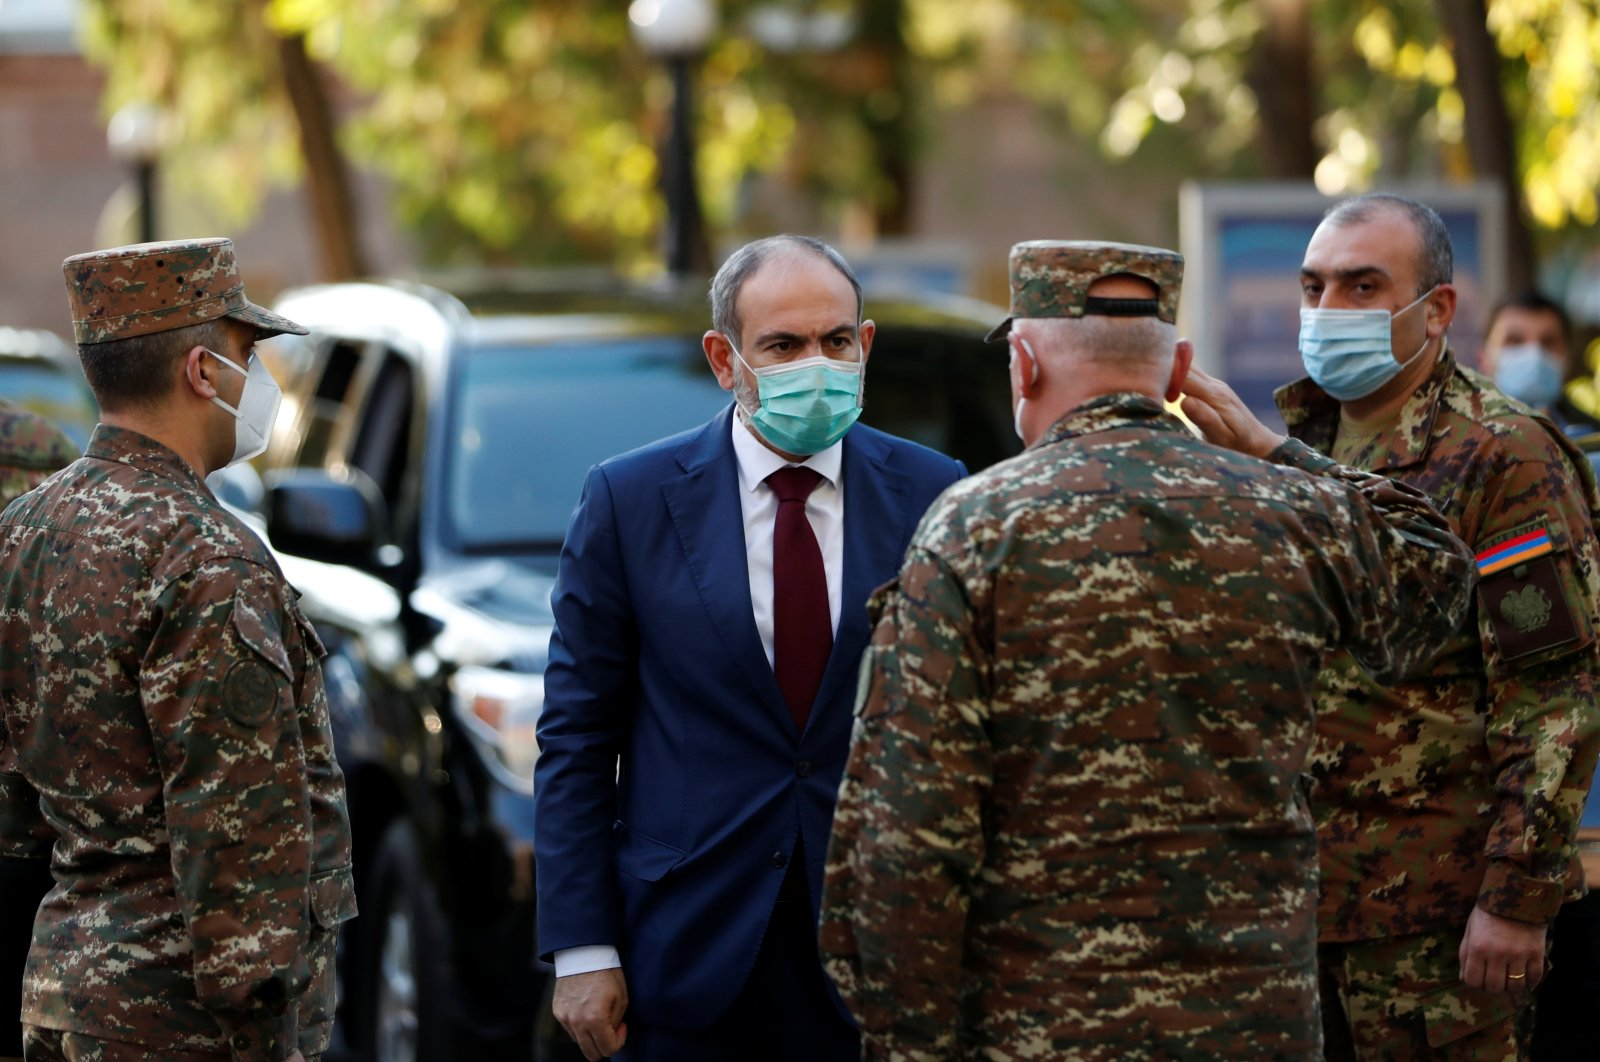 Armenian Prime Minister Nikol Pashinian (C) visits the Central Clinical Military Hospital of the Armenian Defense Ministry, where servicemen wounded during the military conflict over the Armenian-occupied Nagorno-Karabakh region are being treated, in Yerevan, Armenia, Oct. 23, 2020. (Armenian Prime Minister Press Service/PAN Photo via Reuters)